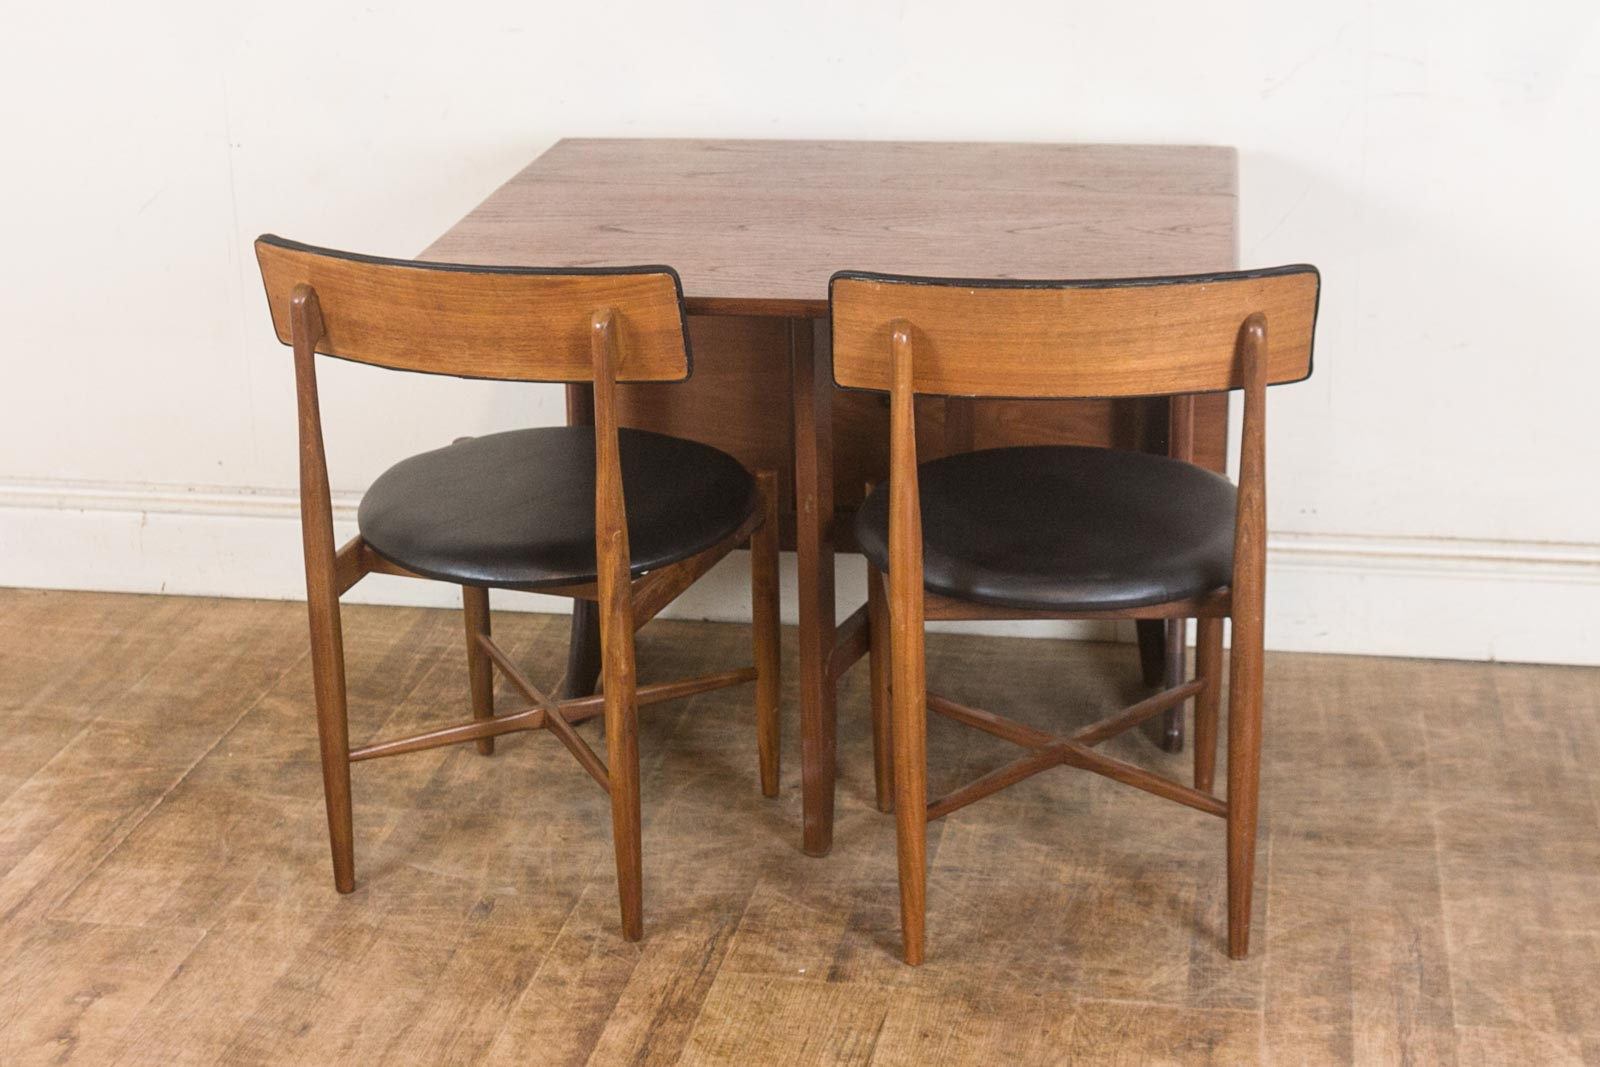 Vintage Retro G Plan Teak Drop Leaf Dining Table and 2  : hV040620 7 from www.ebay.co.uk size 1600 x 1067 jpeg 183kB